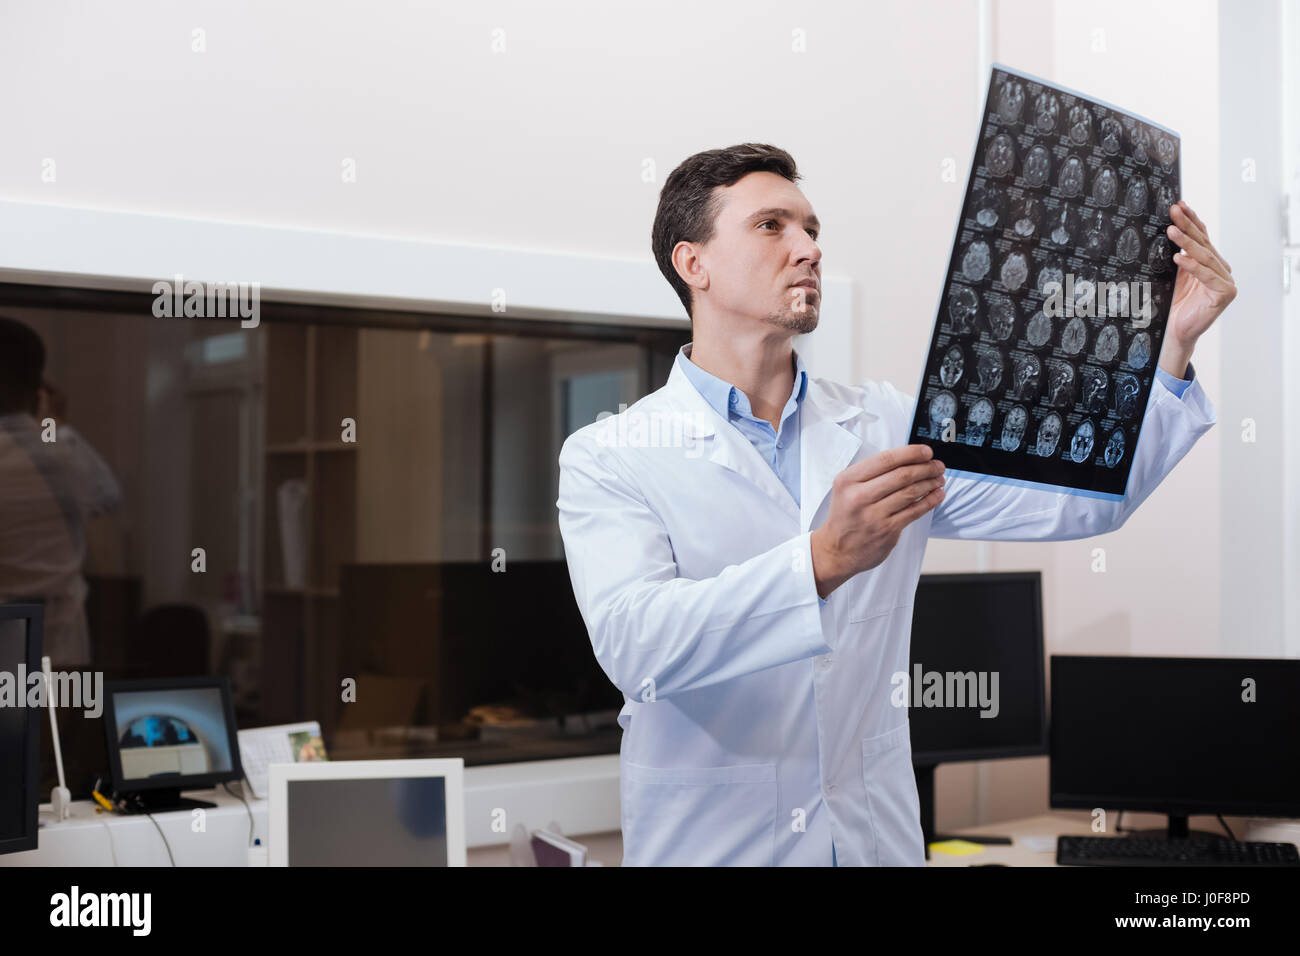 Handsome experienced radiologist looking at CT scan pictures - Stock Image